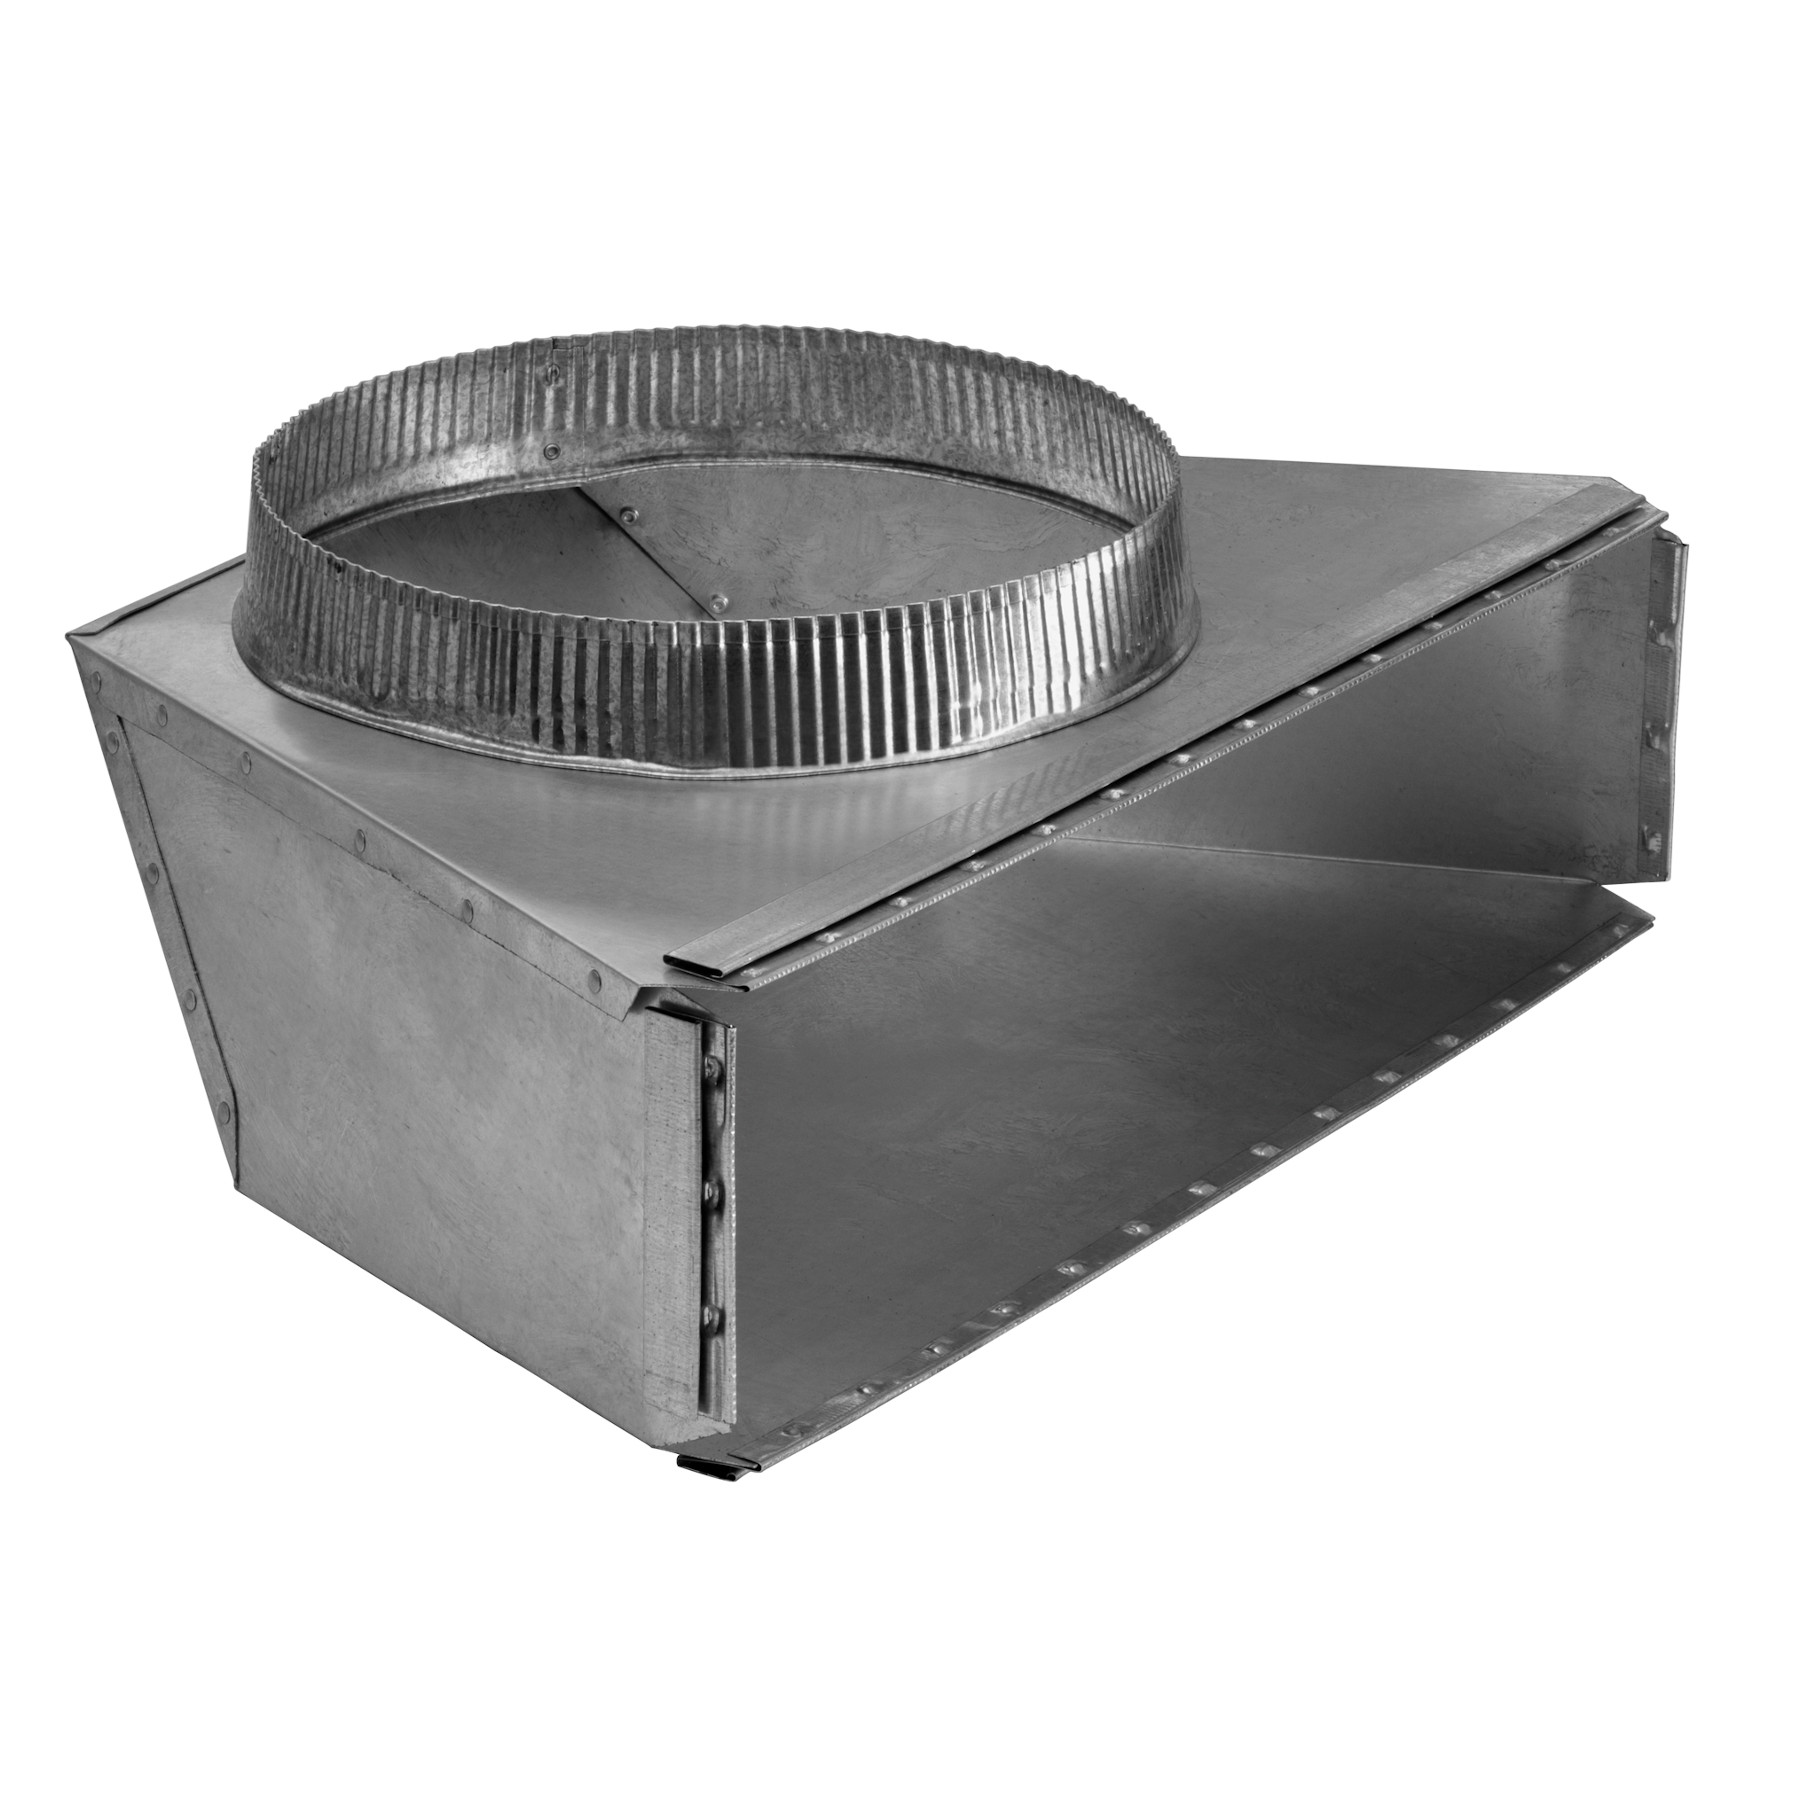 10-Inch Round Rear Transition for Range Hoods and Bath Ventilation Fans